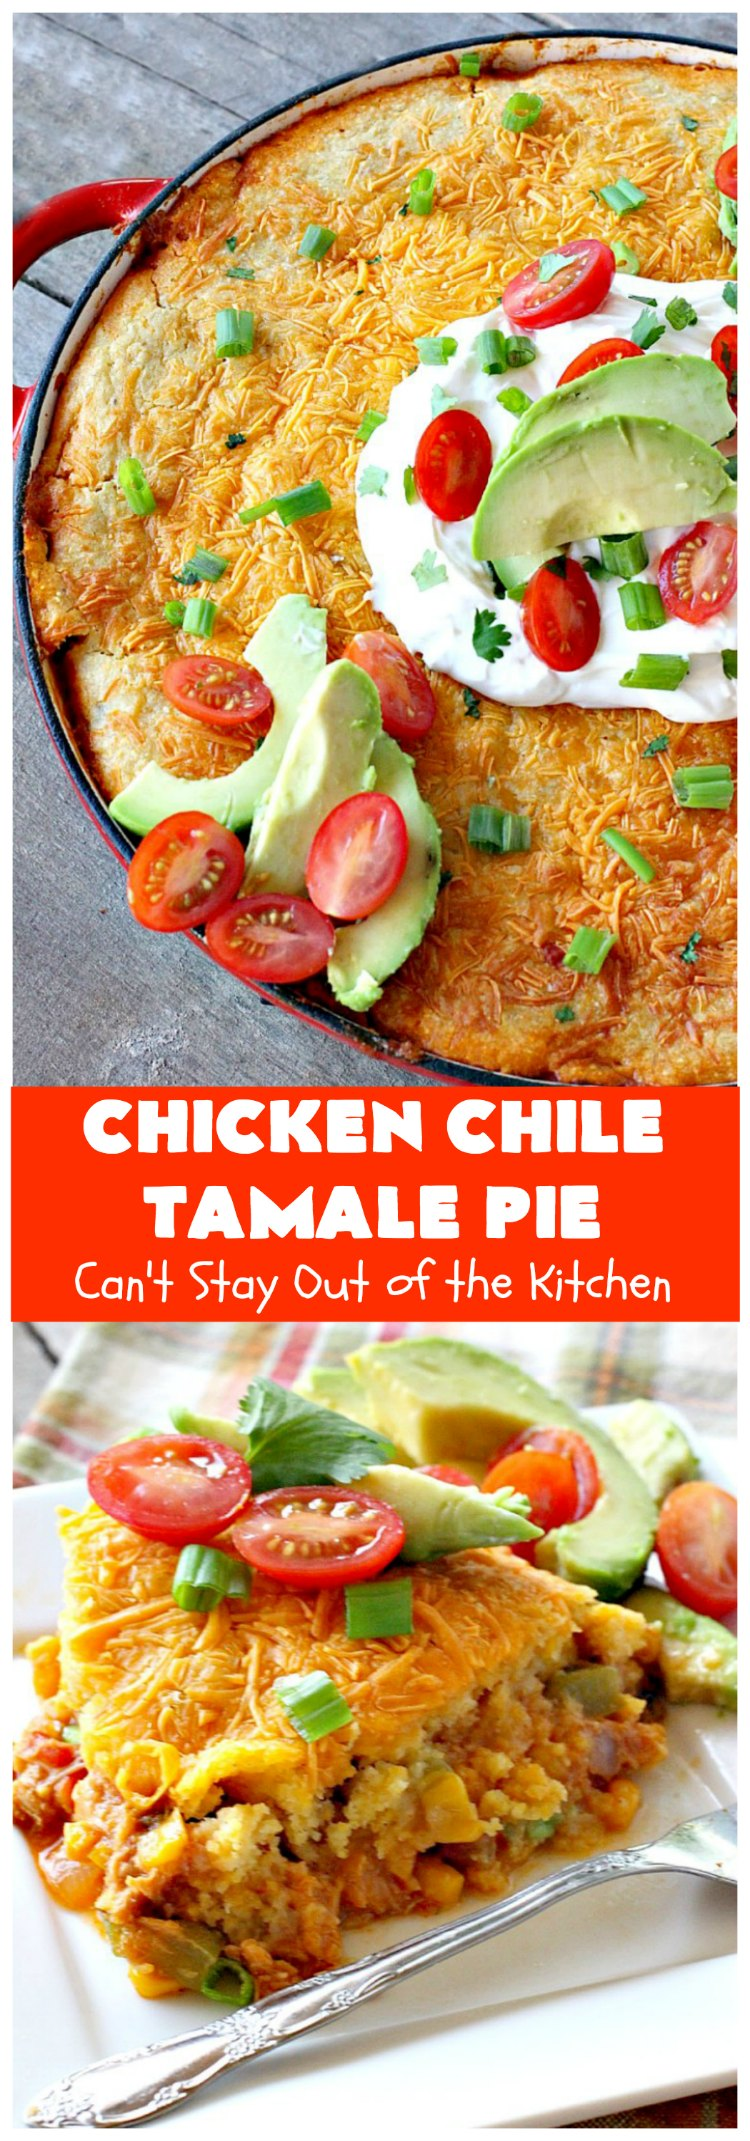 Chicken Chile Tamale Pie | Can't Stay Out of the Kitchen | this amazing #TamalePie tastes absolutely fantastic. It's perfect for #tailgating parties & potlucks. So mouthwatering you won't be able to stop eating it! #chicken #avocados #corn #olives #cheese #glutenFree #TexMex #tamales #ChickenChileTamalePie